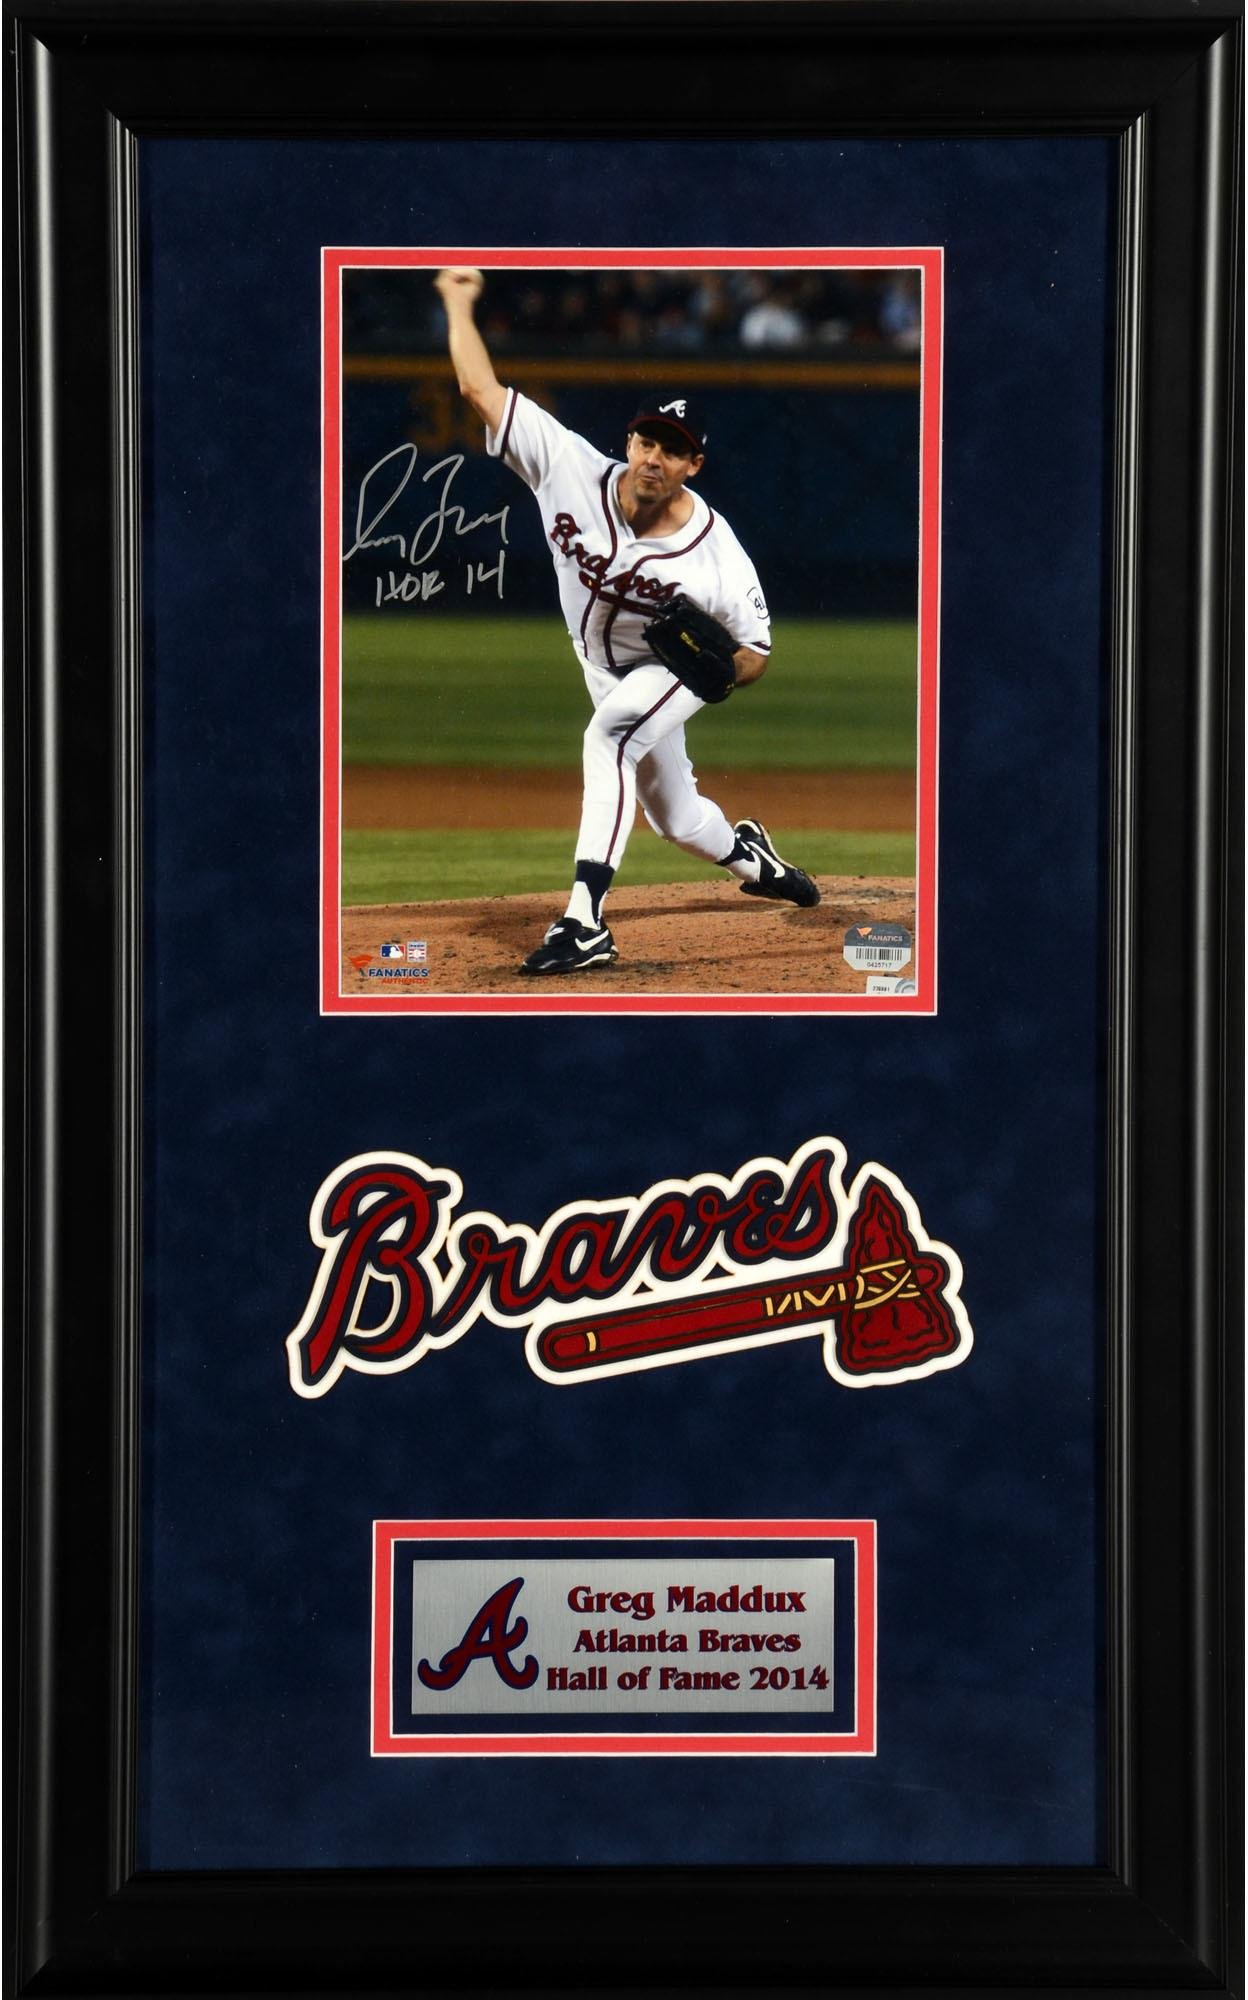 """Greg Maddux Atlanta Braves Deluxe Framed Autographed 8"""" x 10"""" Vertical Pitching Photograph with HOF 2014 Inscription Fanatics Authentic Certified"""